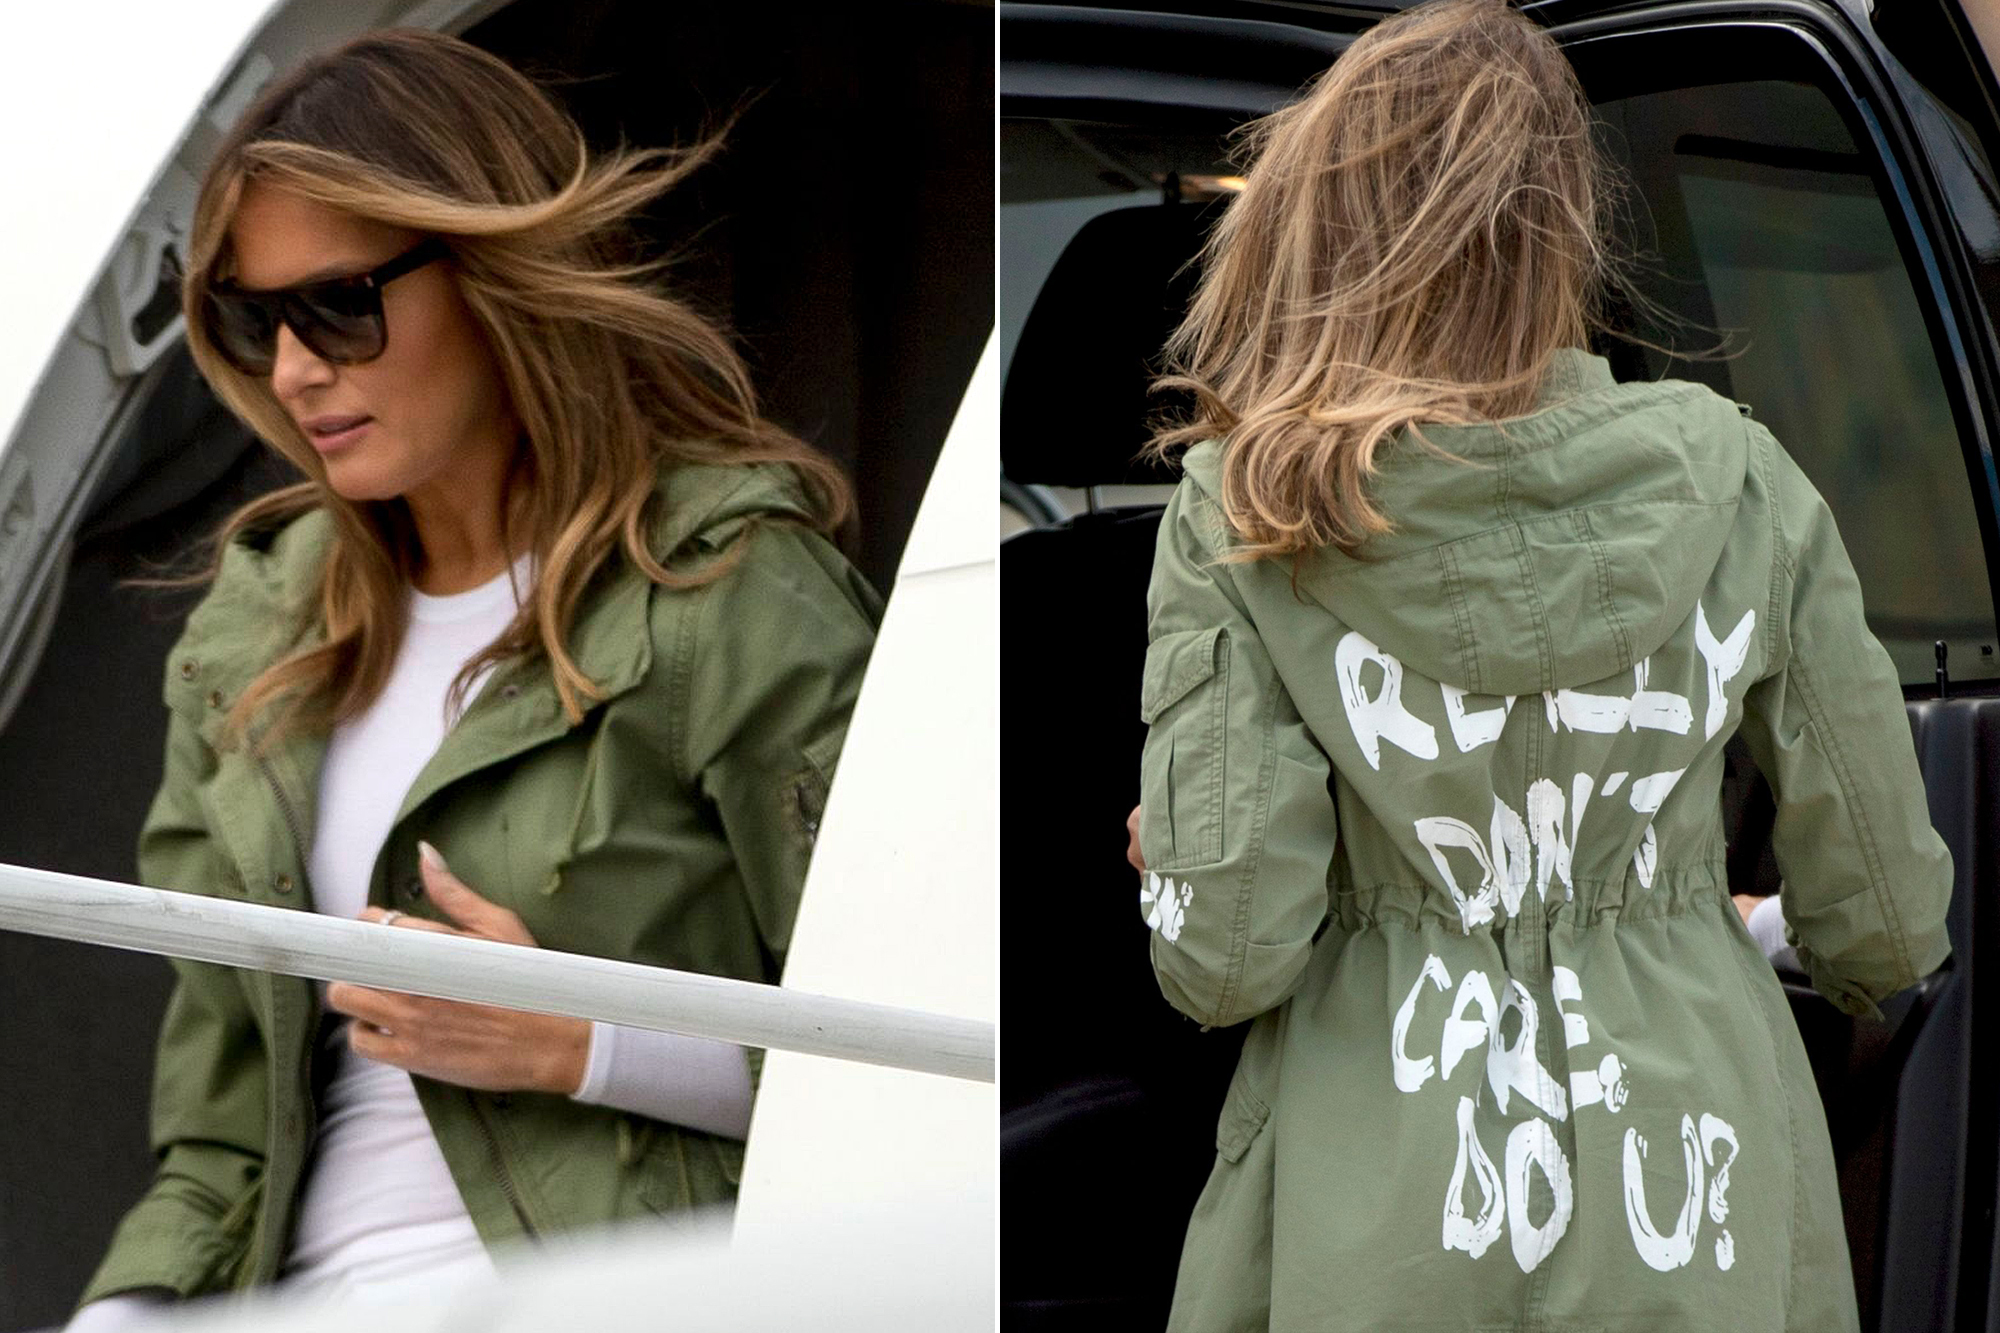 Melania Trump says 'don't care' jacket was a message